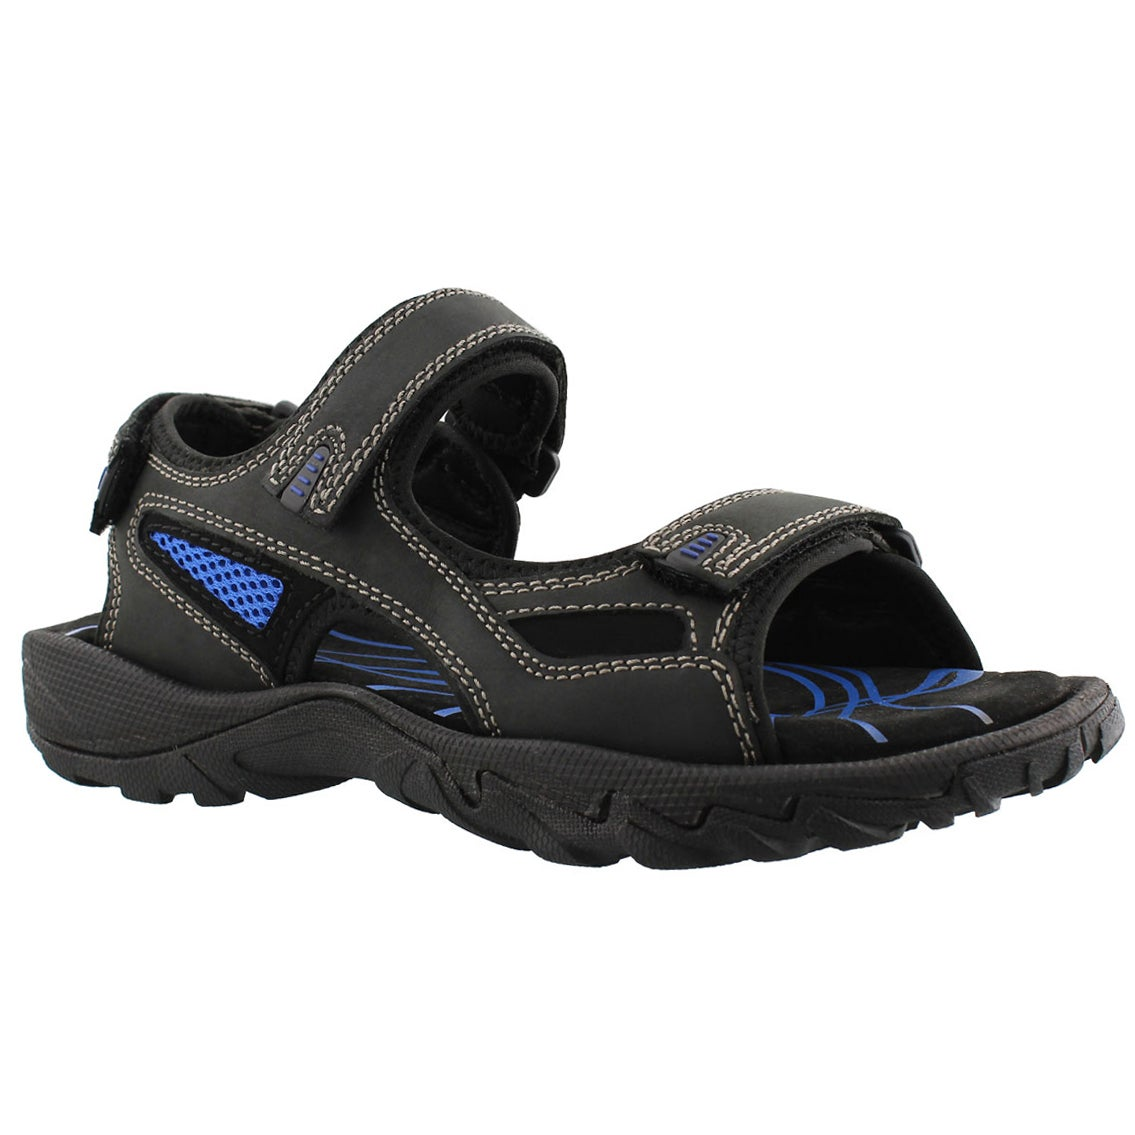 Men's LUCIUS black 3 strap sport sandals